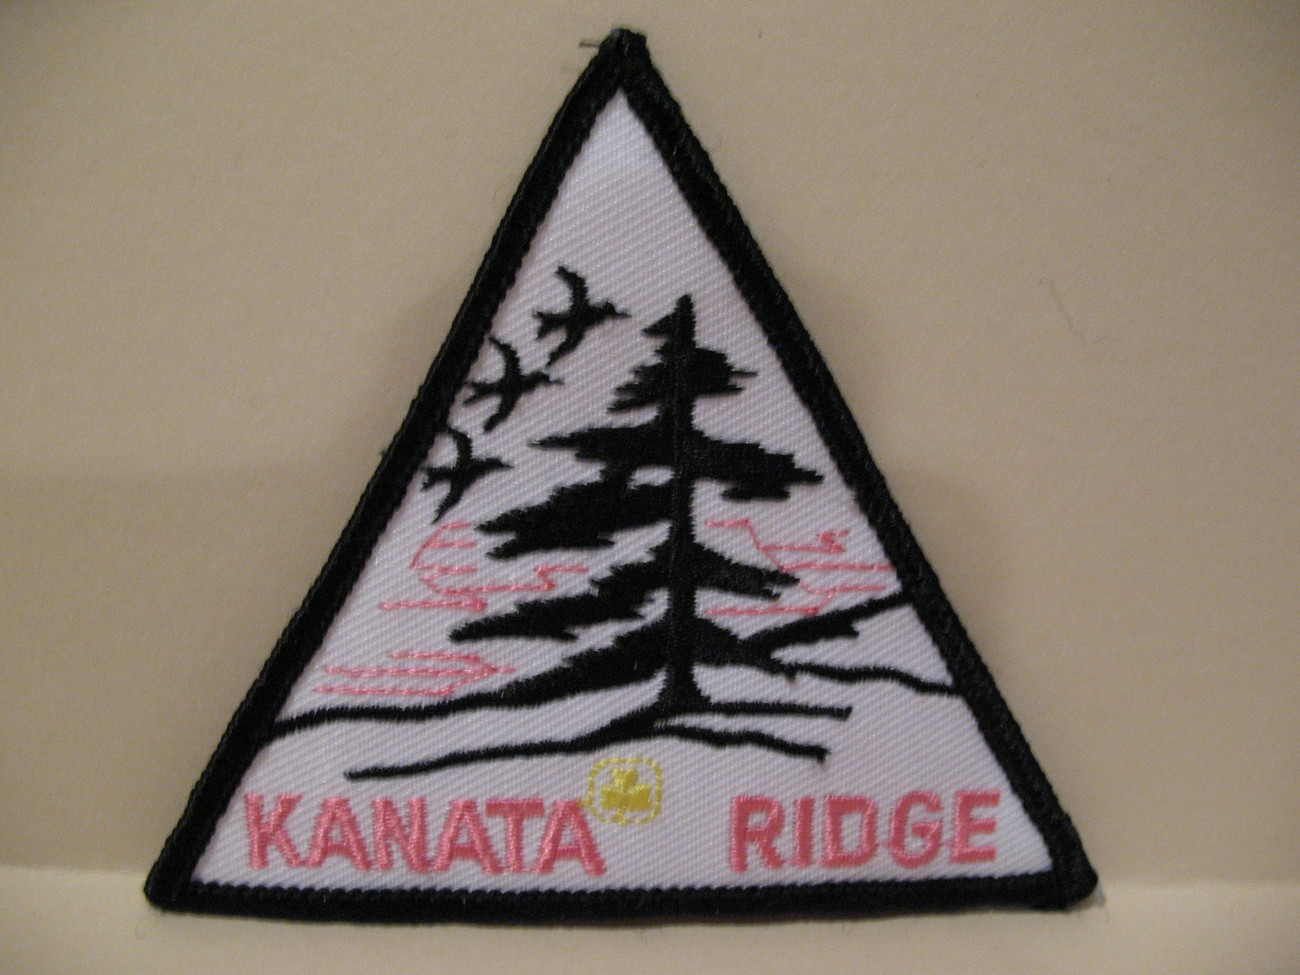 Primary image for Kanata Ridge Girl Guides Souvenir Badge Patch Crest